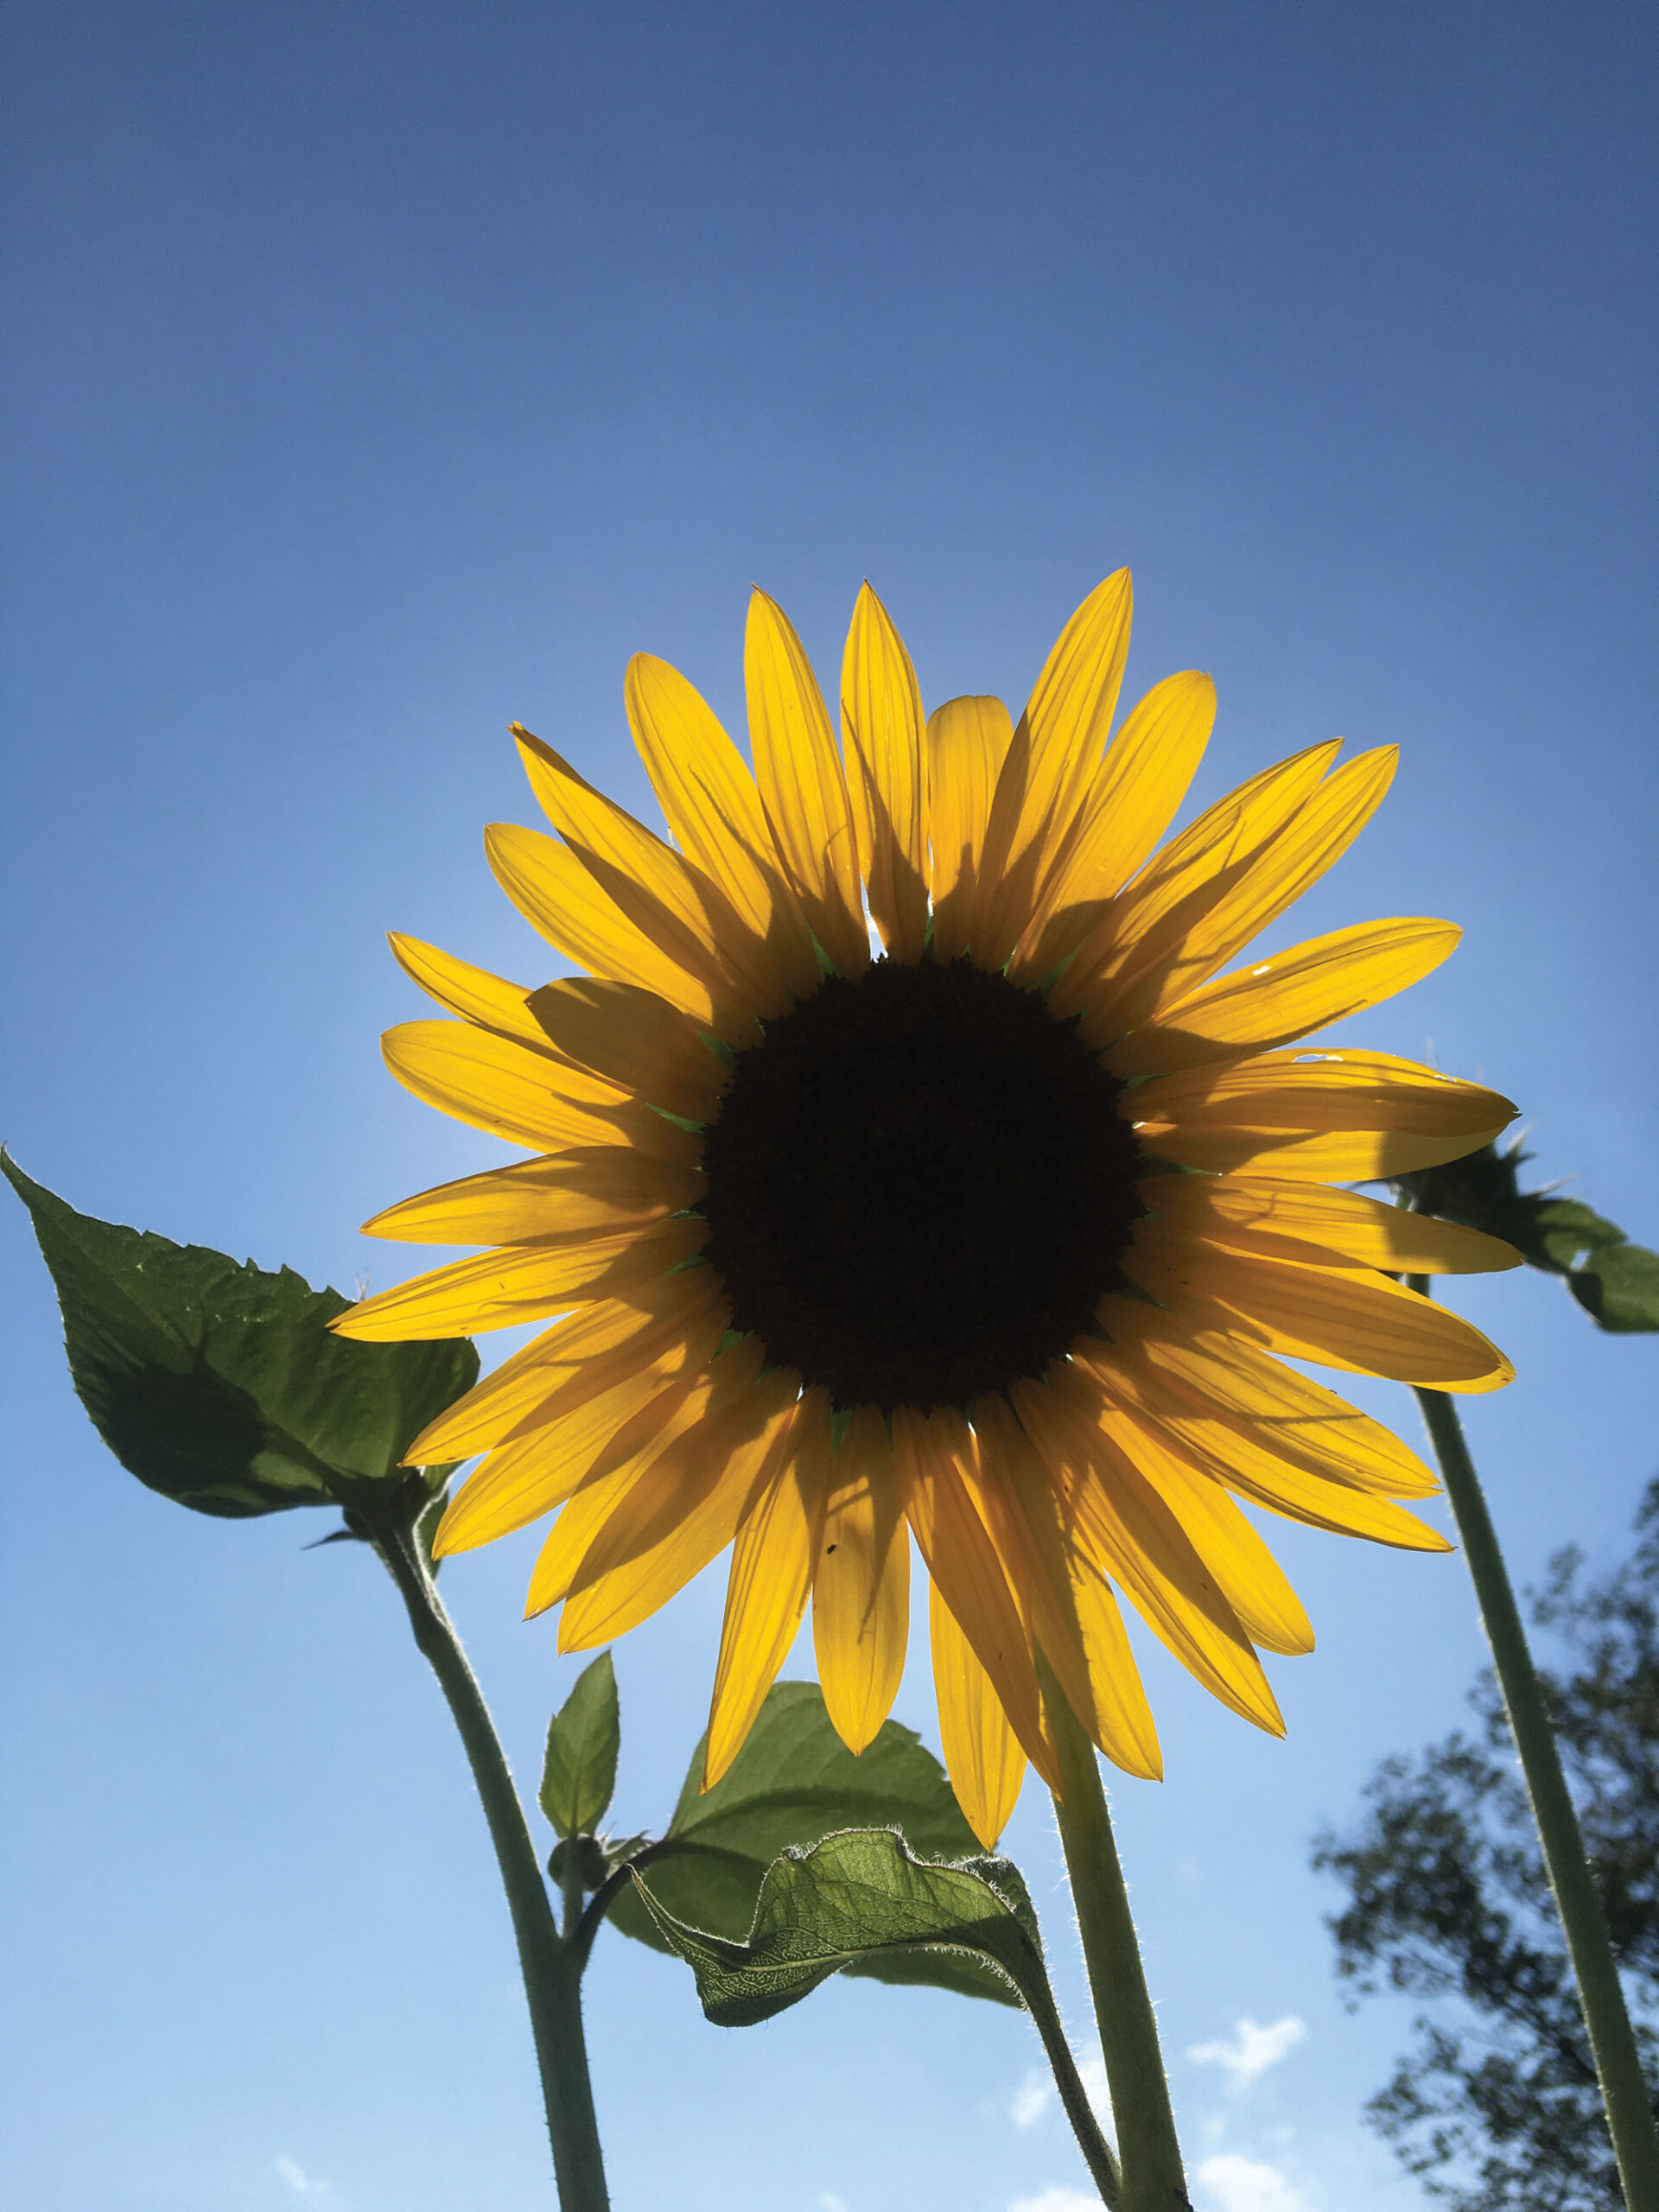 close up photo of a sunflower against a blue sky